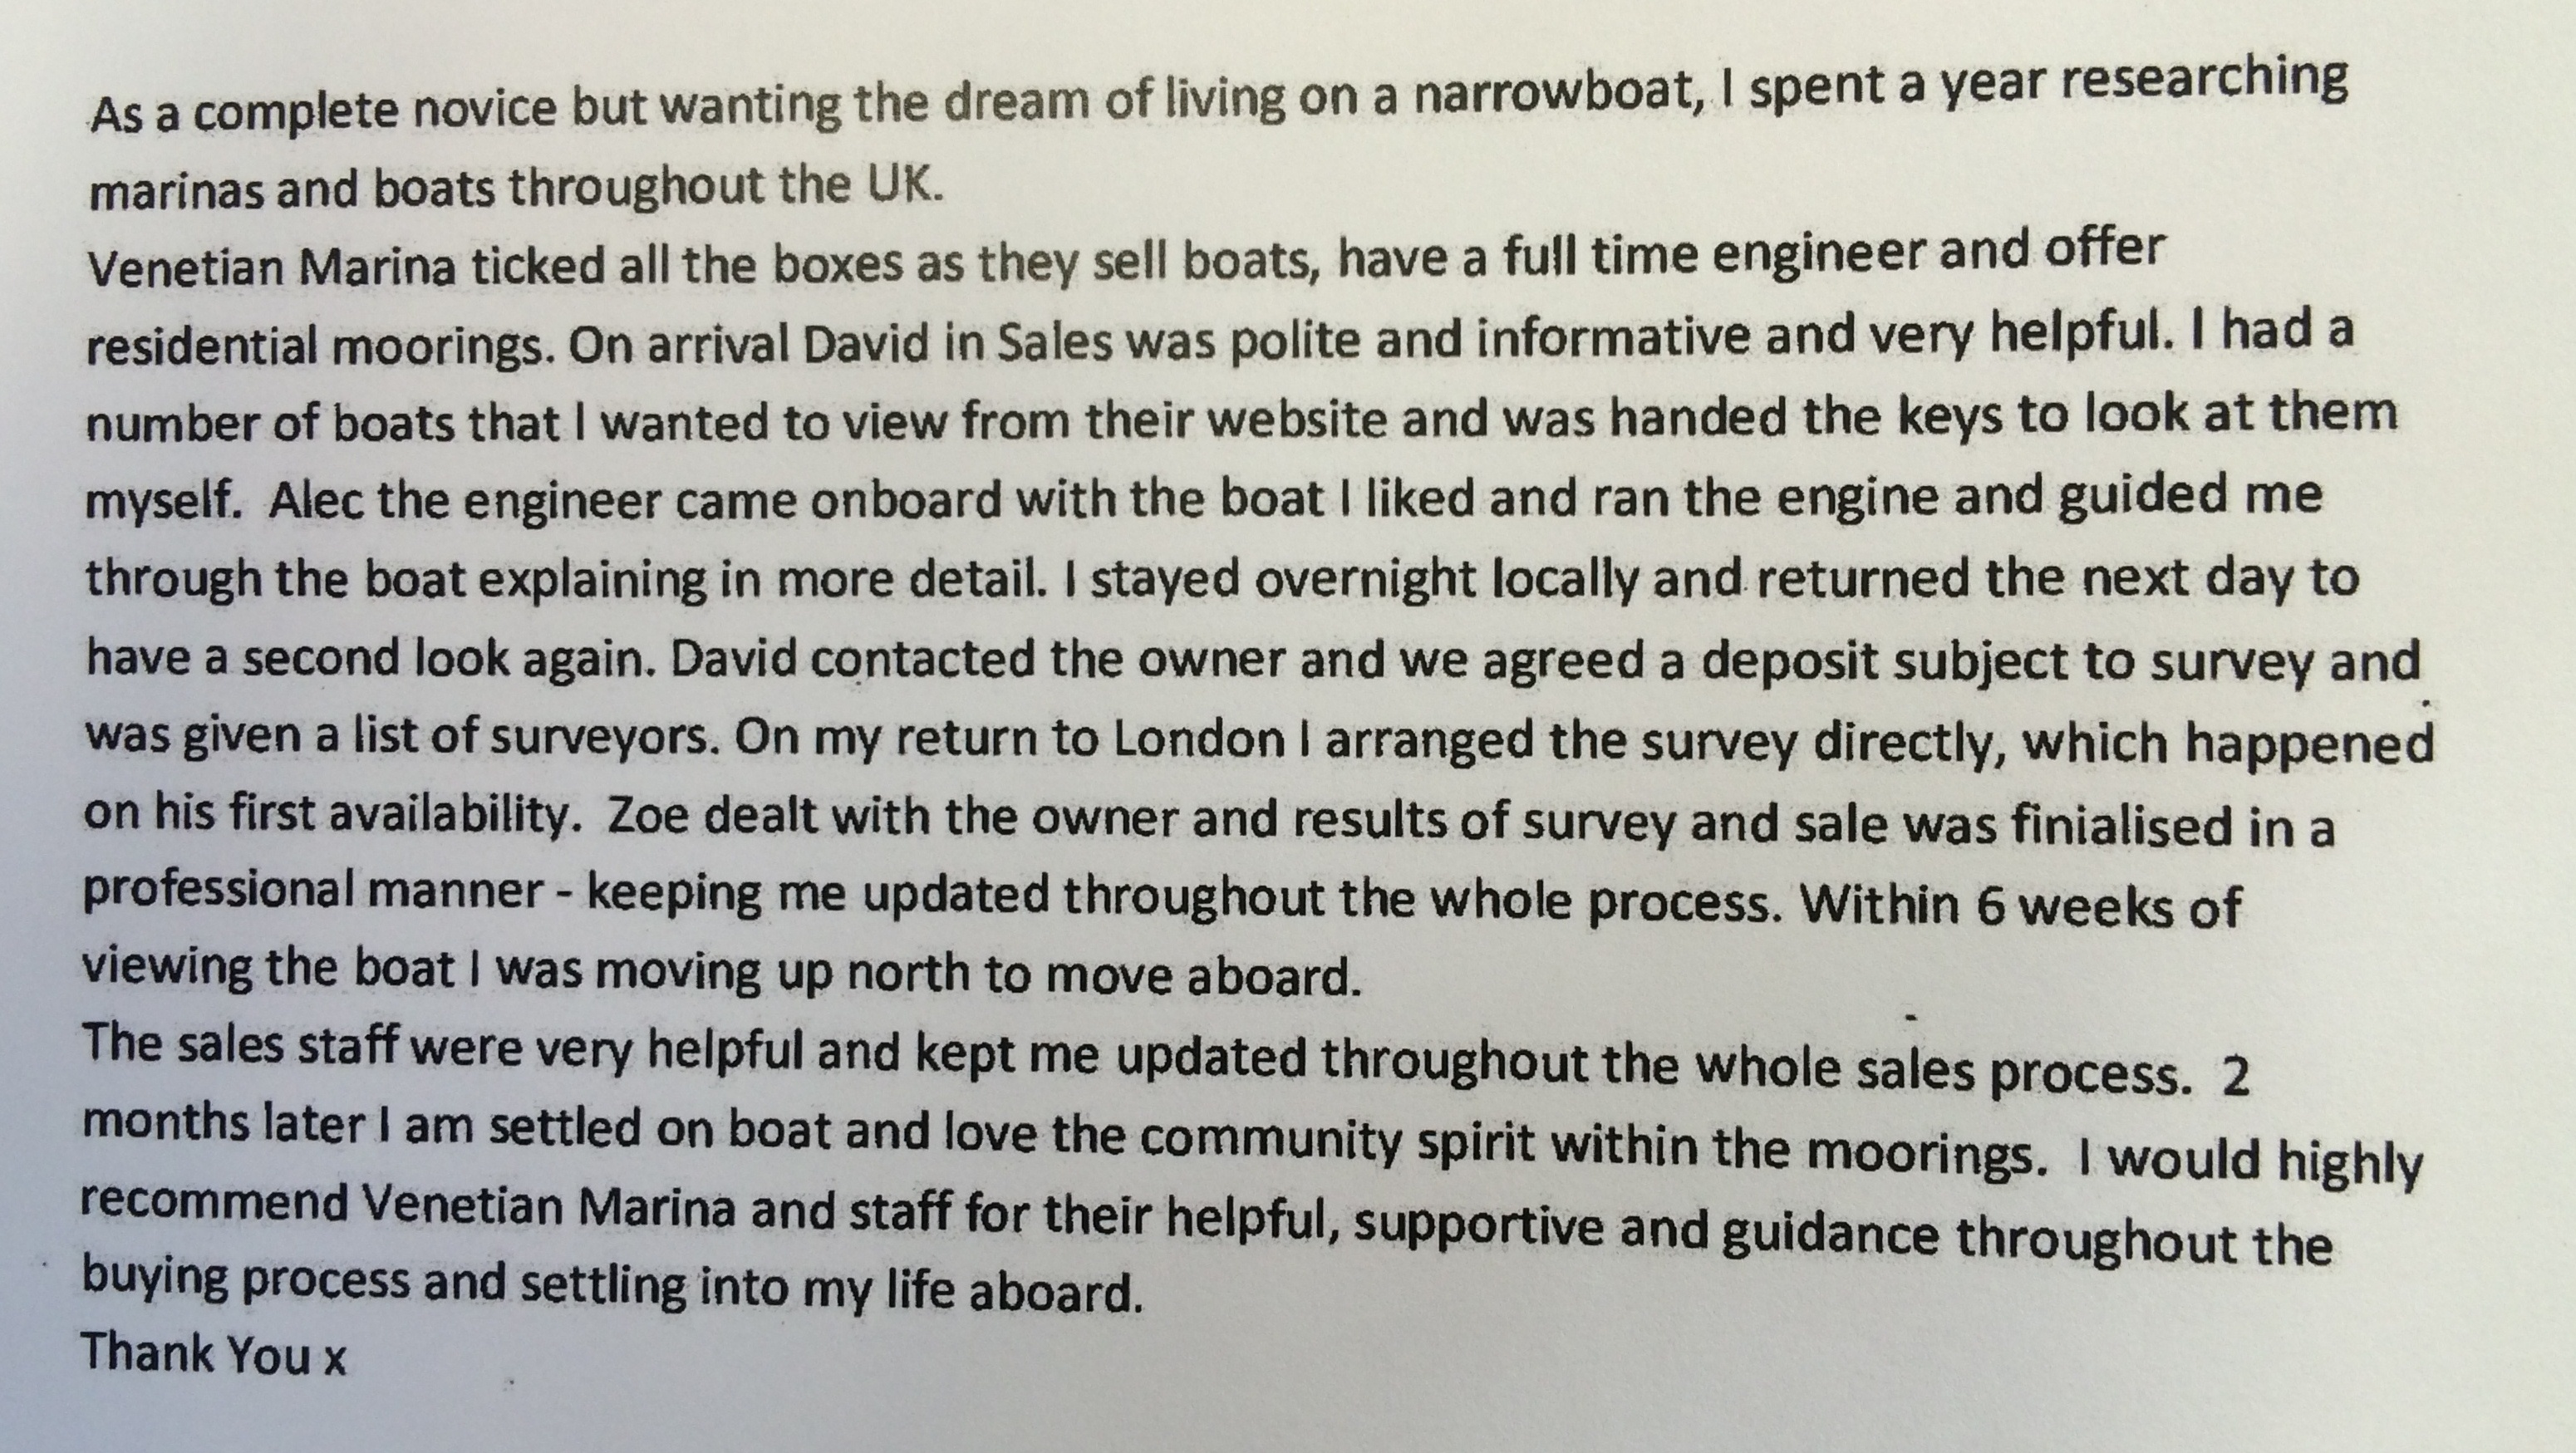 customer-feedback-from-purchasers-of-narrowboat-phoosticks